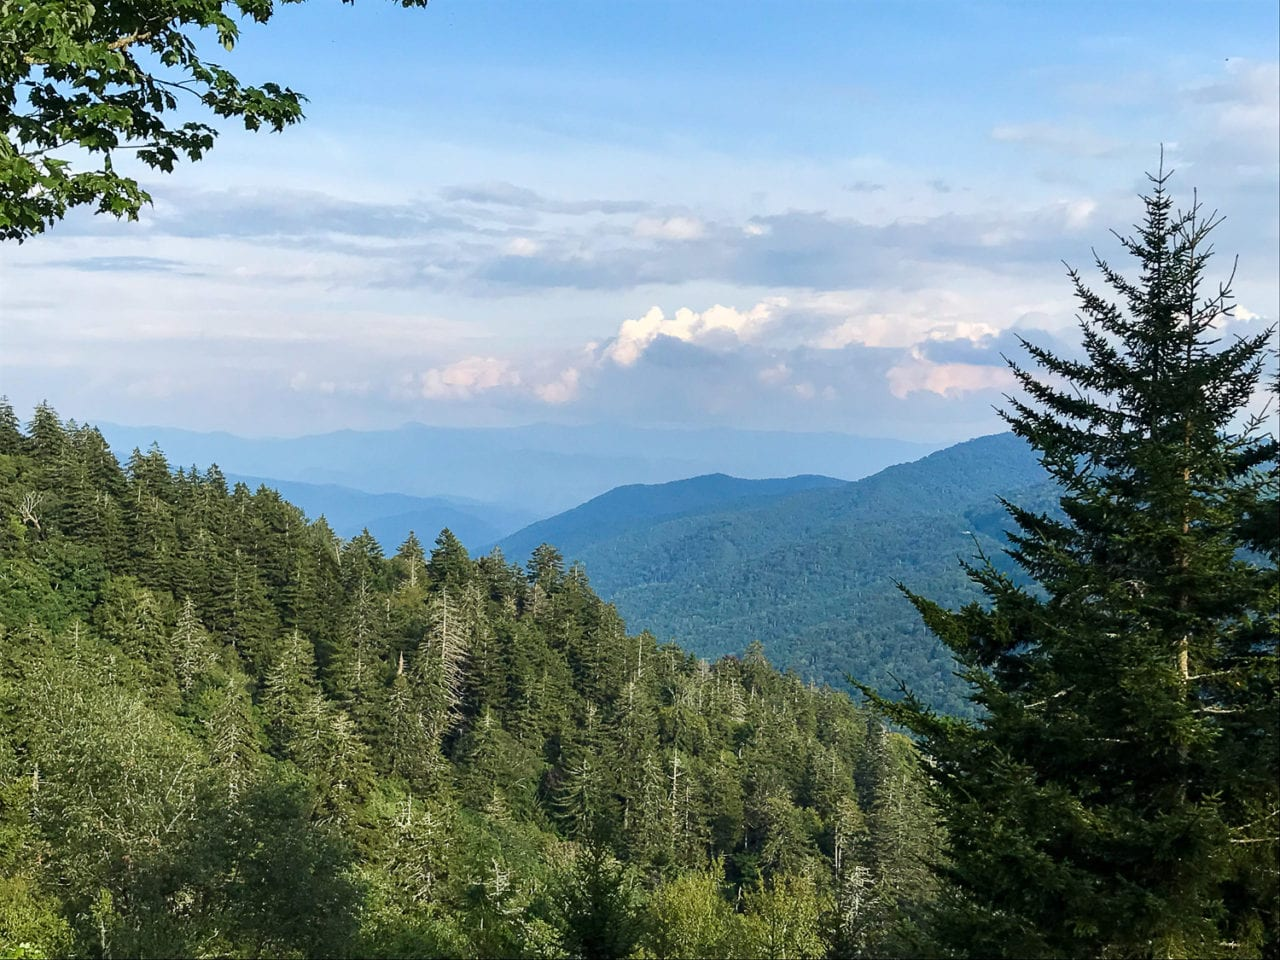 A view of early fall in the Smoky Mountains via Jessica at unearththevoyage.com.